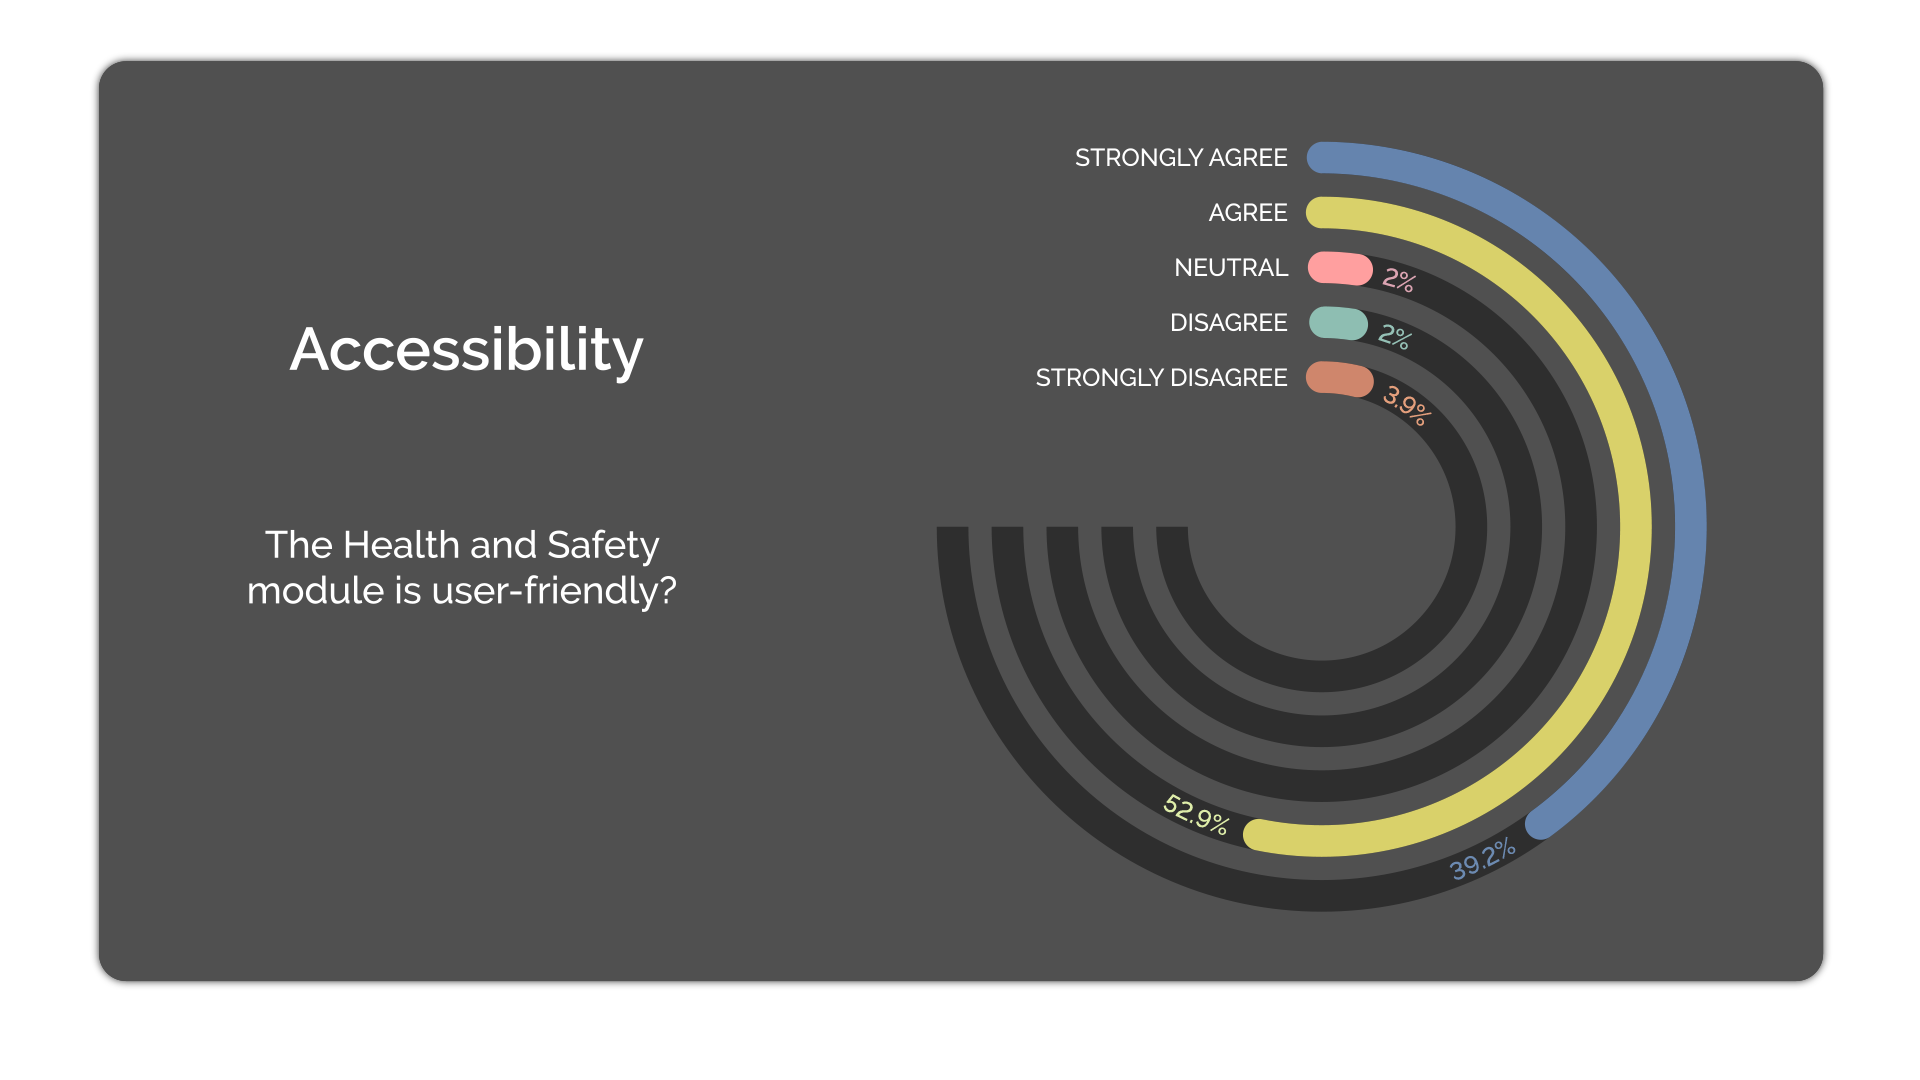 A data image showing a large proportion of students agreeing the module is user friendly.